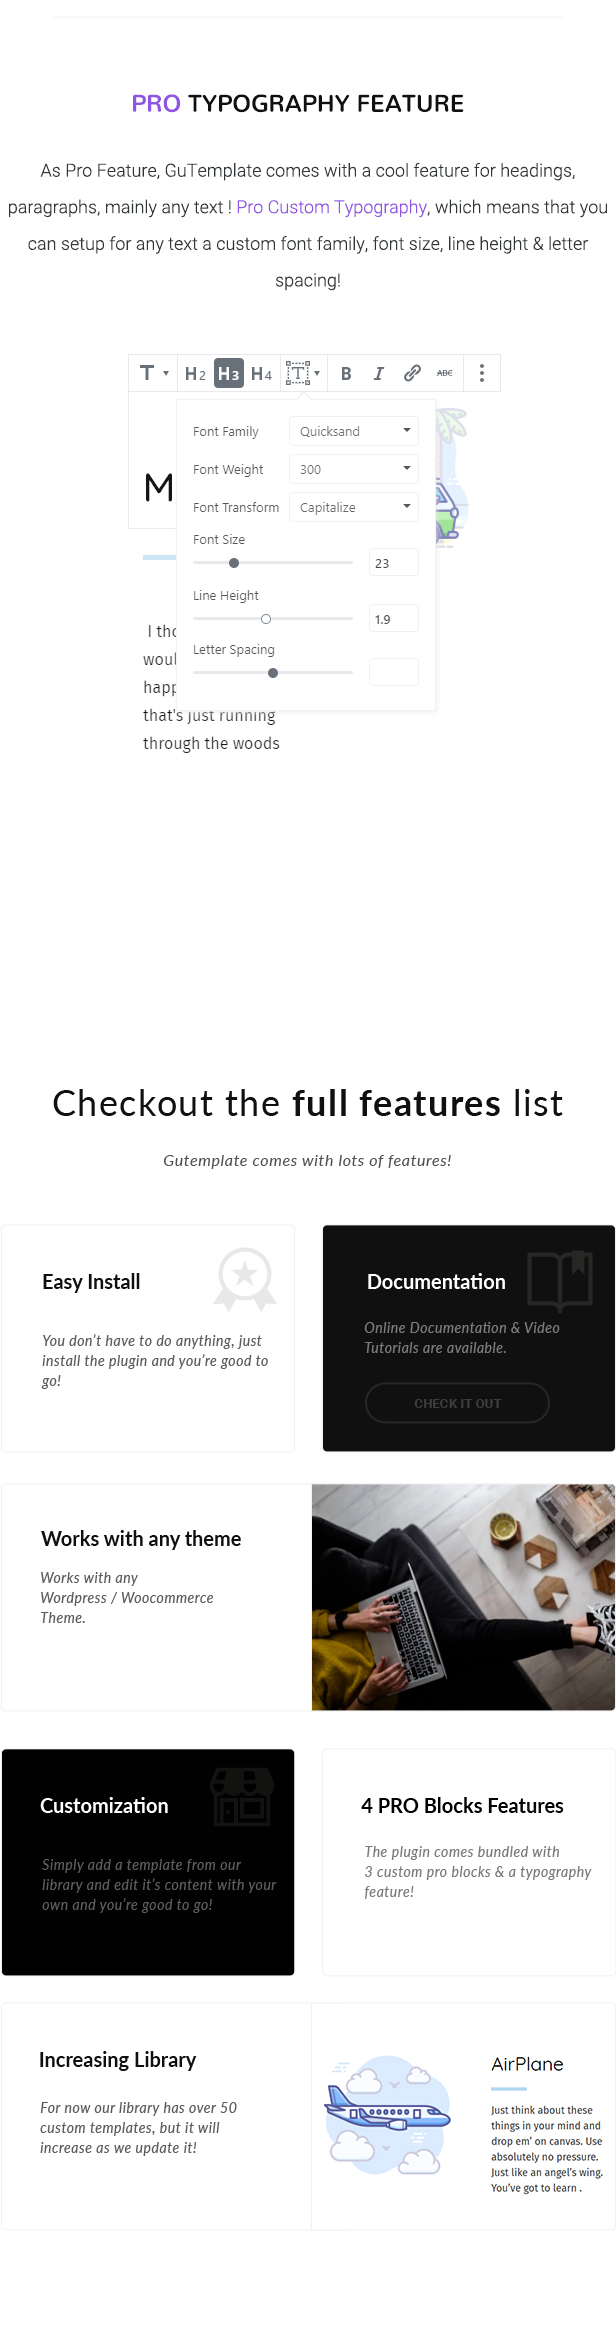 GuTemplate - Pro Templates Library for WordPress - 3